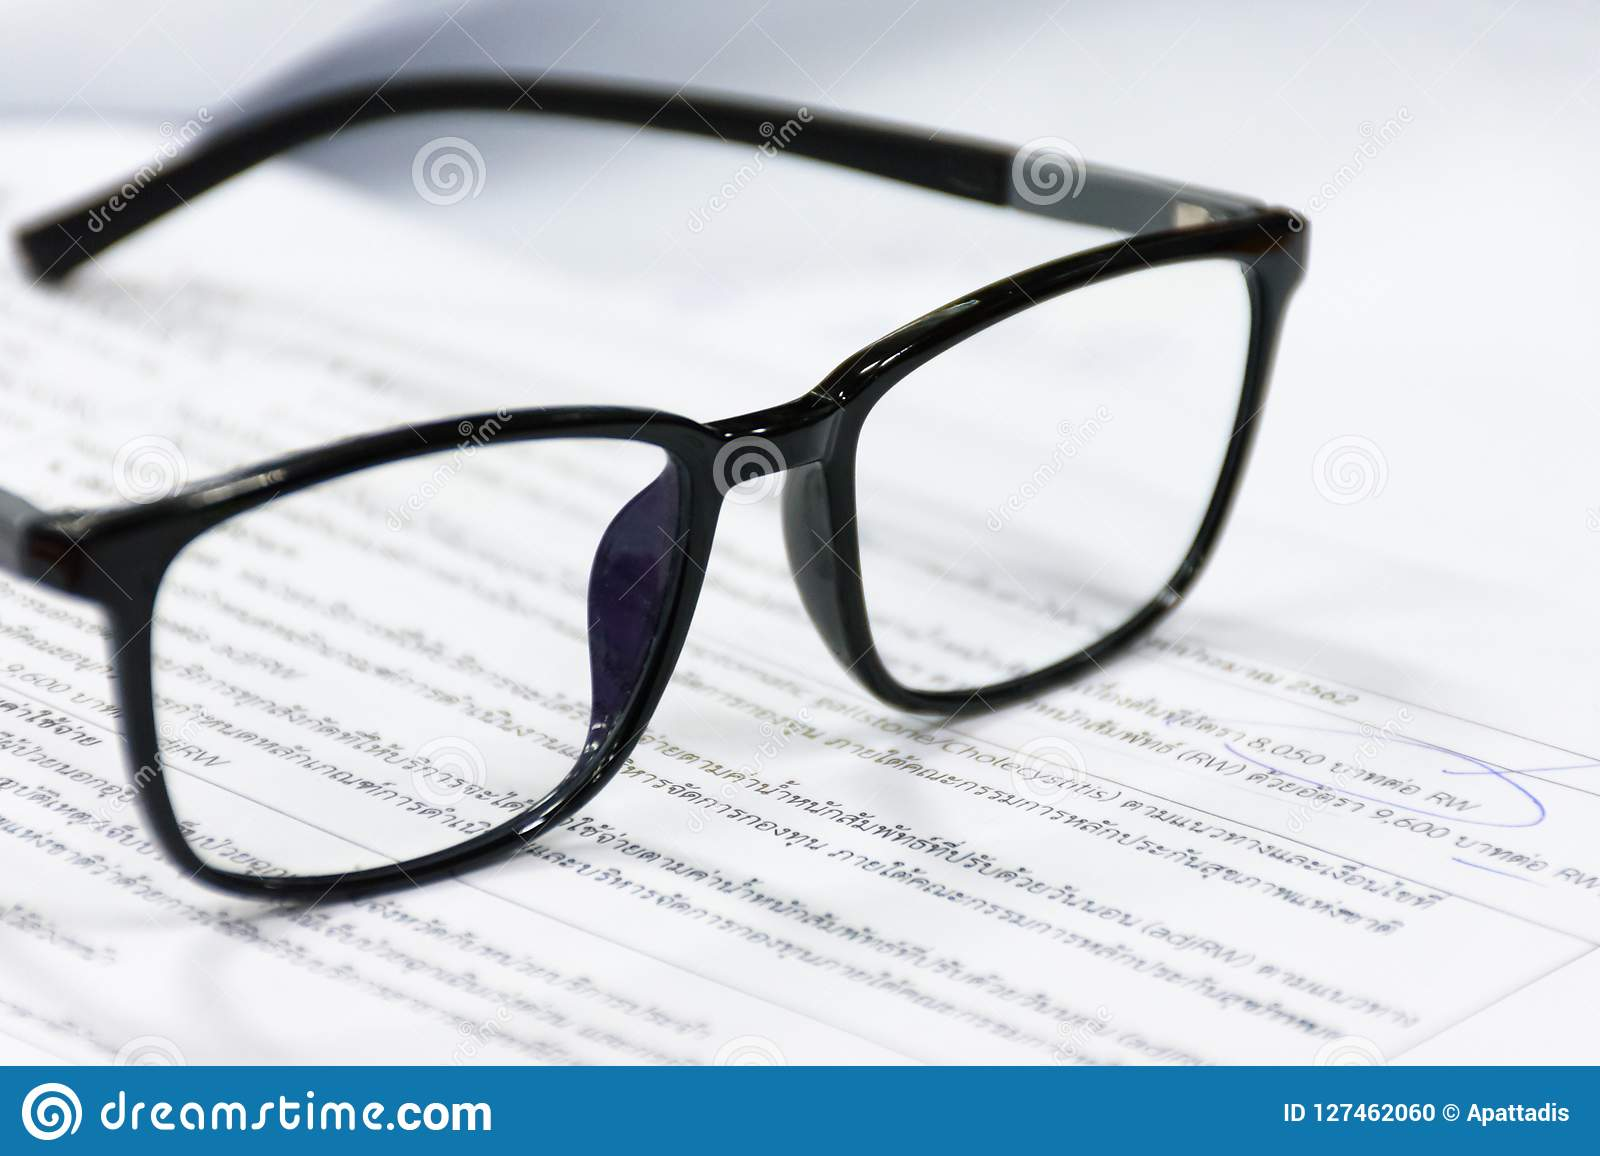 0b36dd42d0d9 Reading Glasses On The Paper Sheet. Stock Photo - Image of looking ...